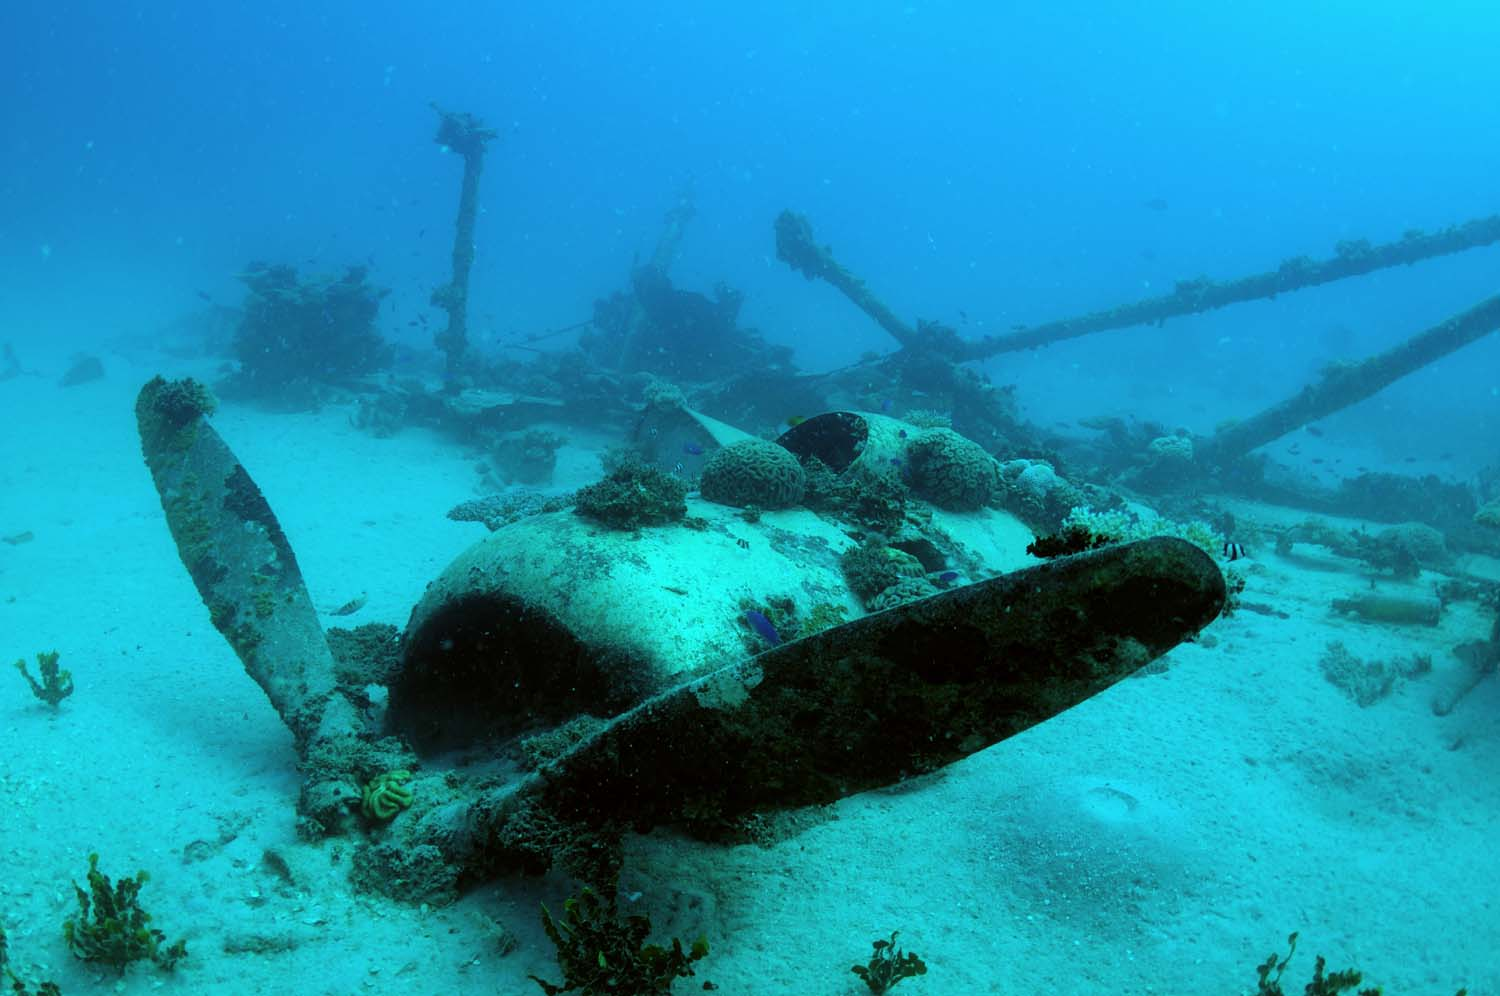 Partially submerged in sand, the engine still offers a glimpse in the past